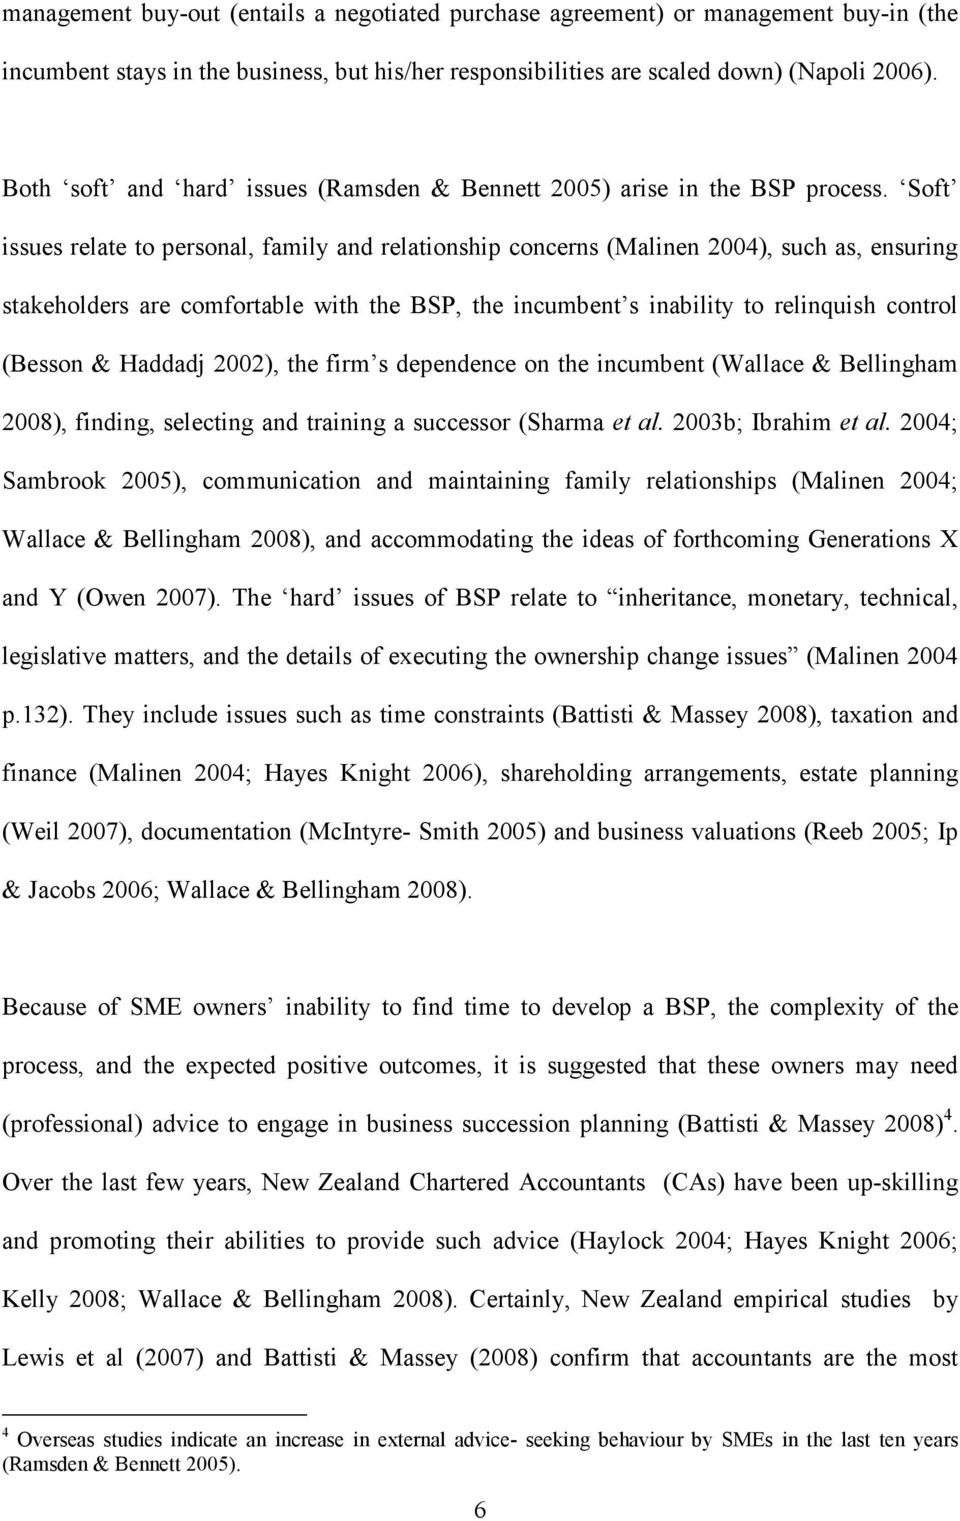 Soft issues relate to personal, family and relationship concerns (Malinen 2004), such as, ensuring stakeholders are comfortable with the BSP, the incumbent s inability to relinquish control (Besson &